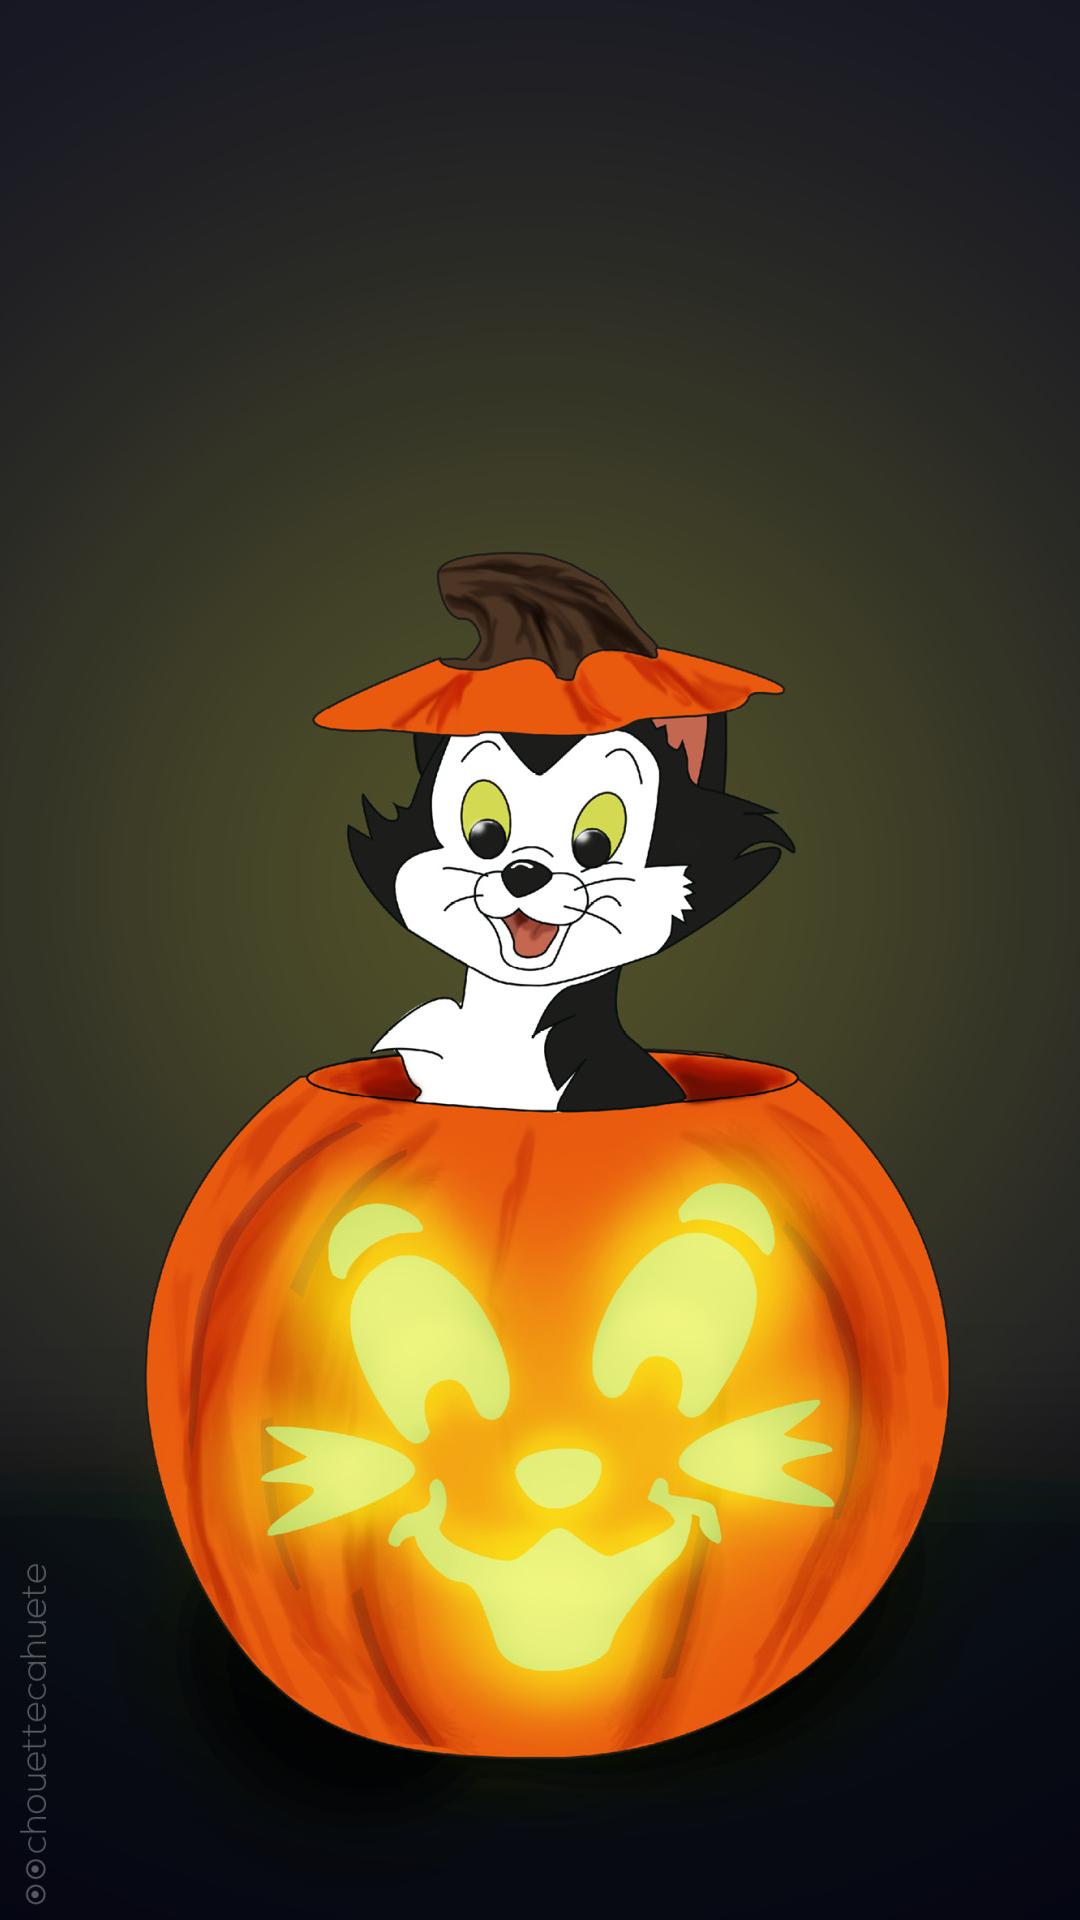 Free Download Cute Halloween Iphone Wallpaper 81 Images 1082x1920